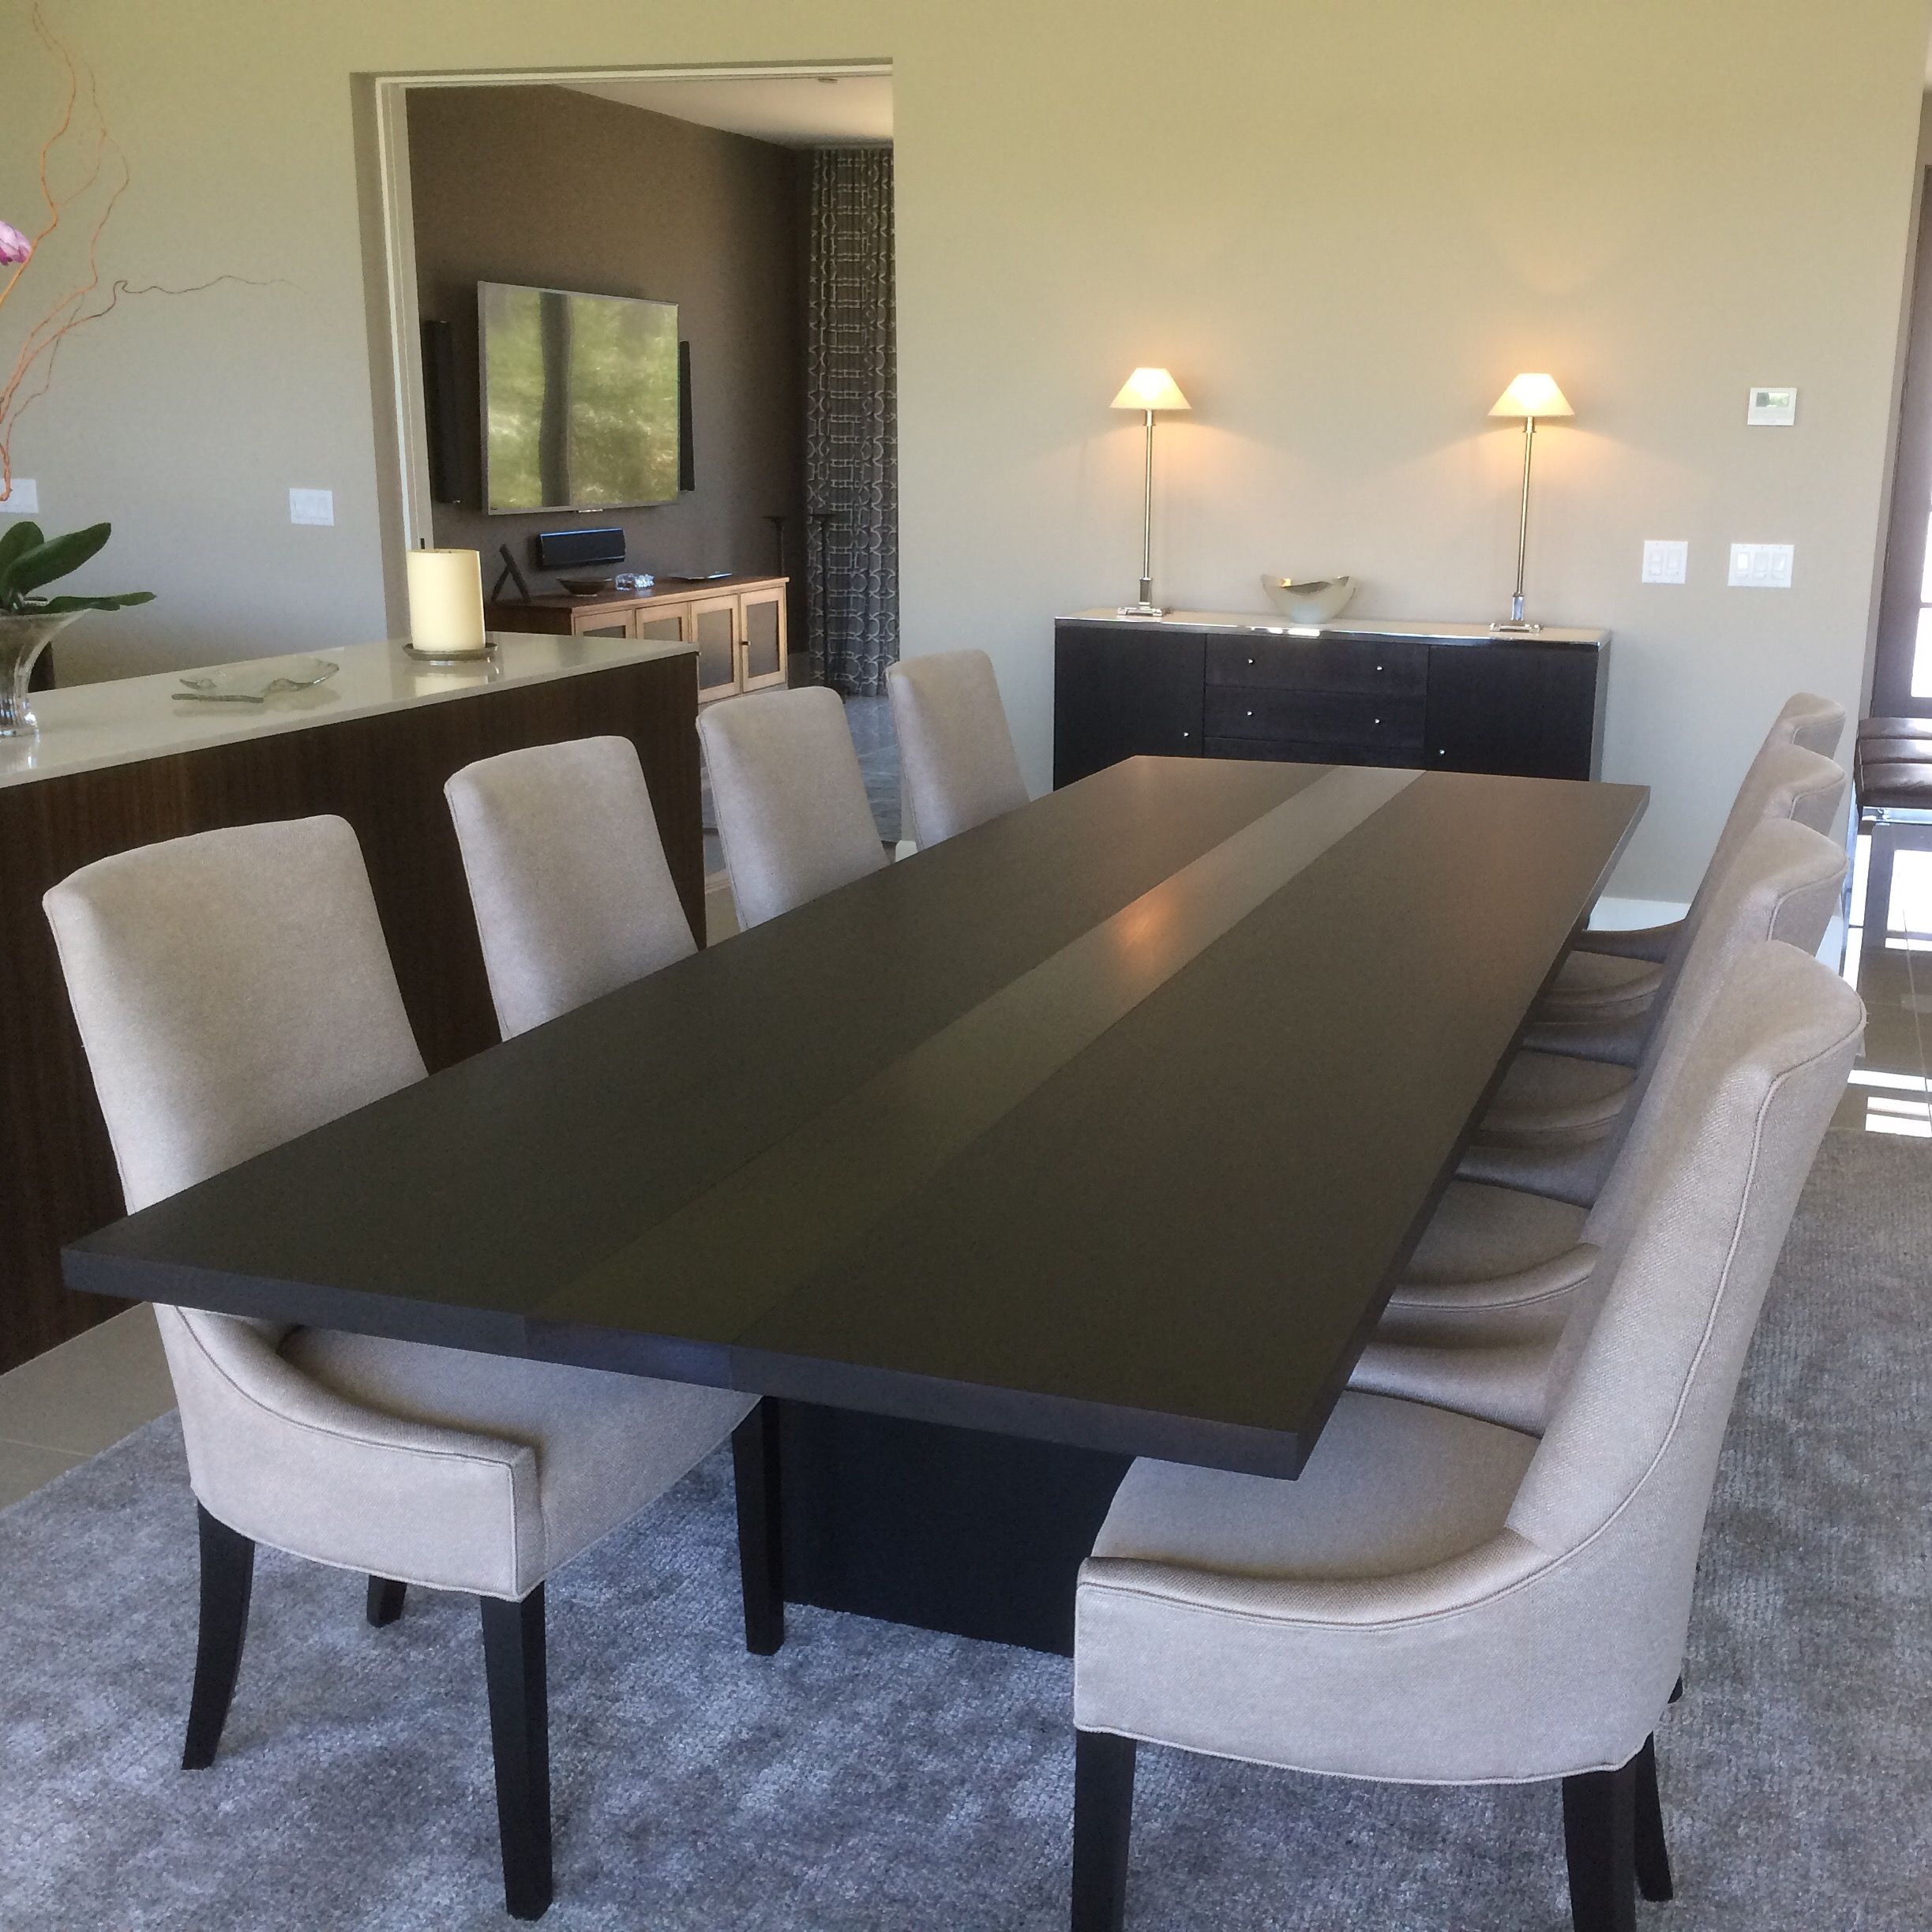 Modern Dining Tables Contemporary Dining Room Tables CustomMadecom - Very modern dining table